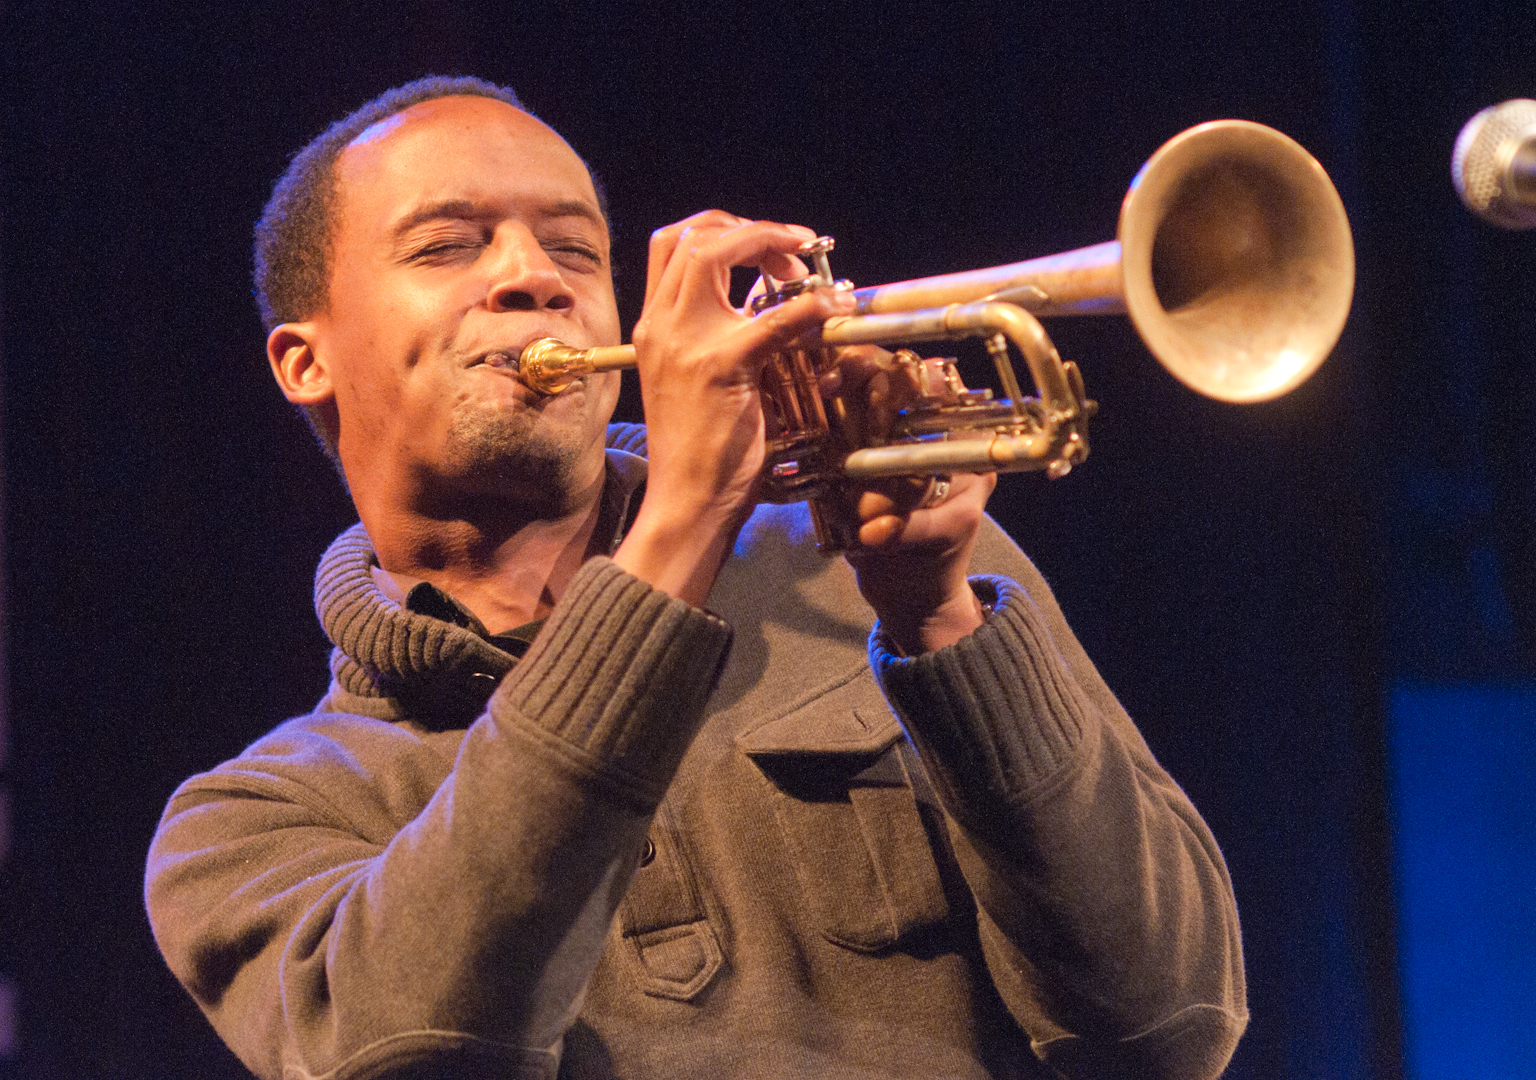 Jason Palmer at the Jam Sessions at the Oslo Jazz Festival